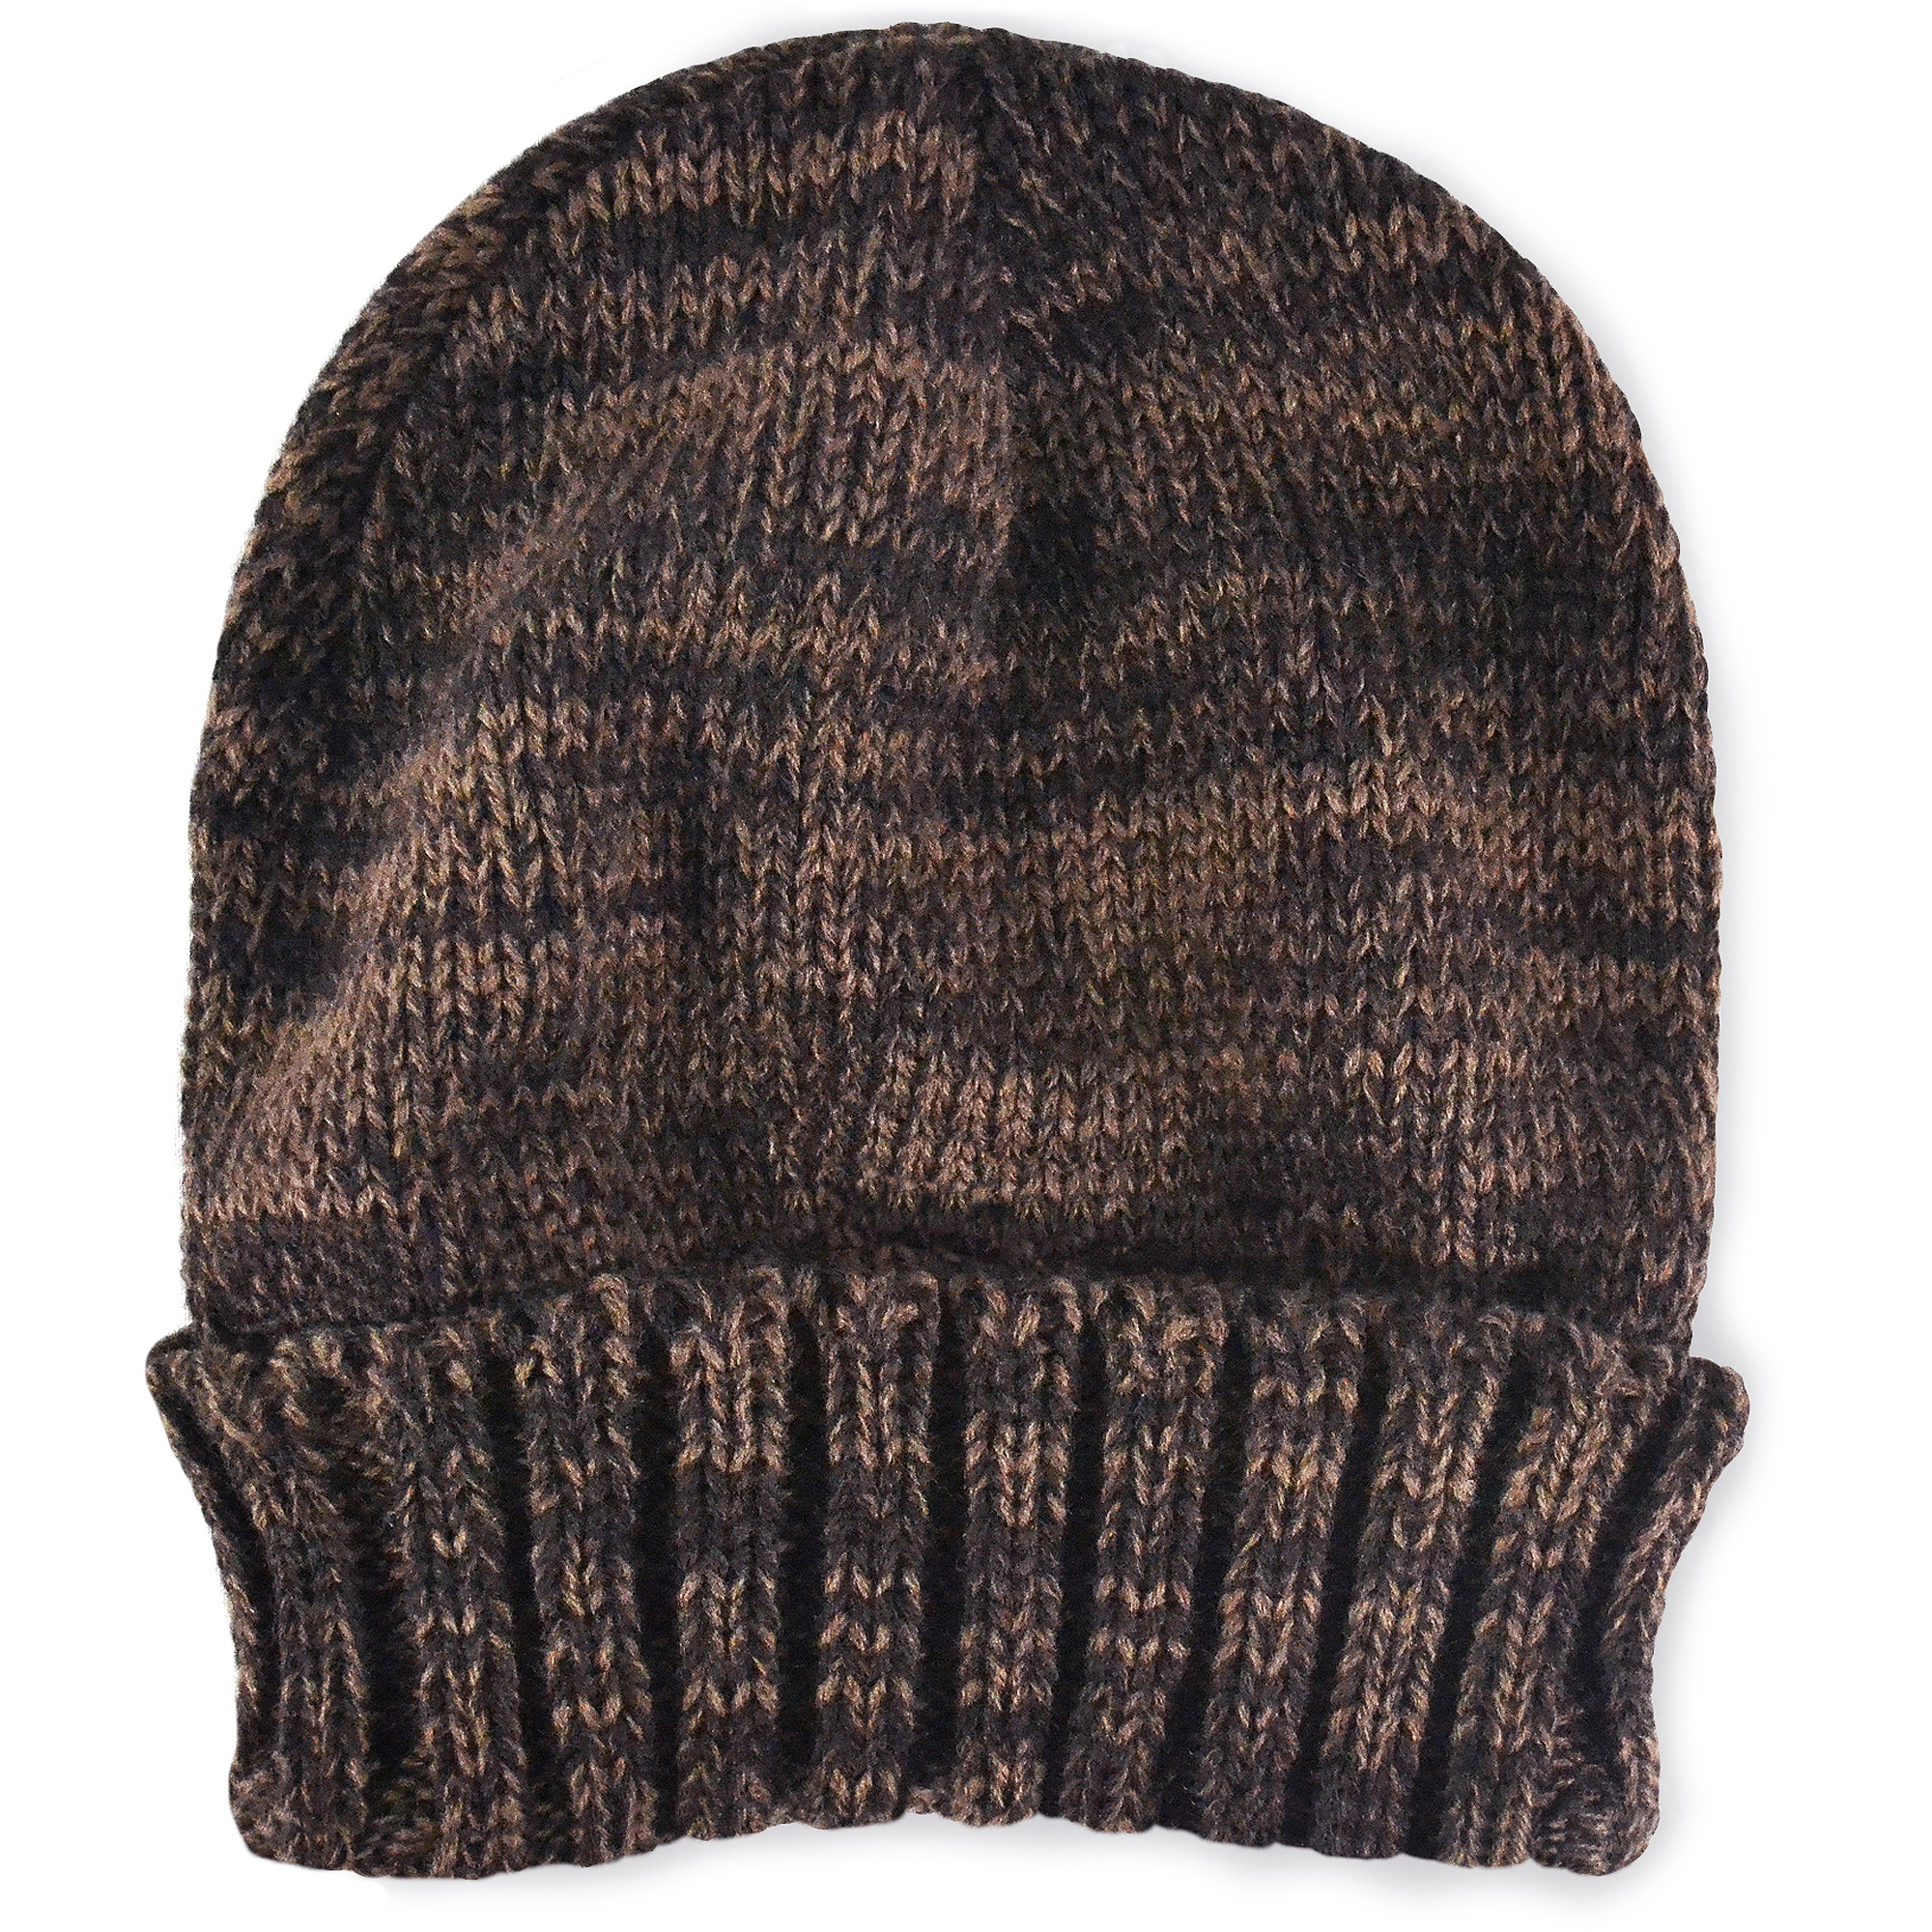 MUK LUKS Men's 2 Color Marl Cuff Cap